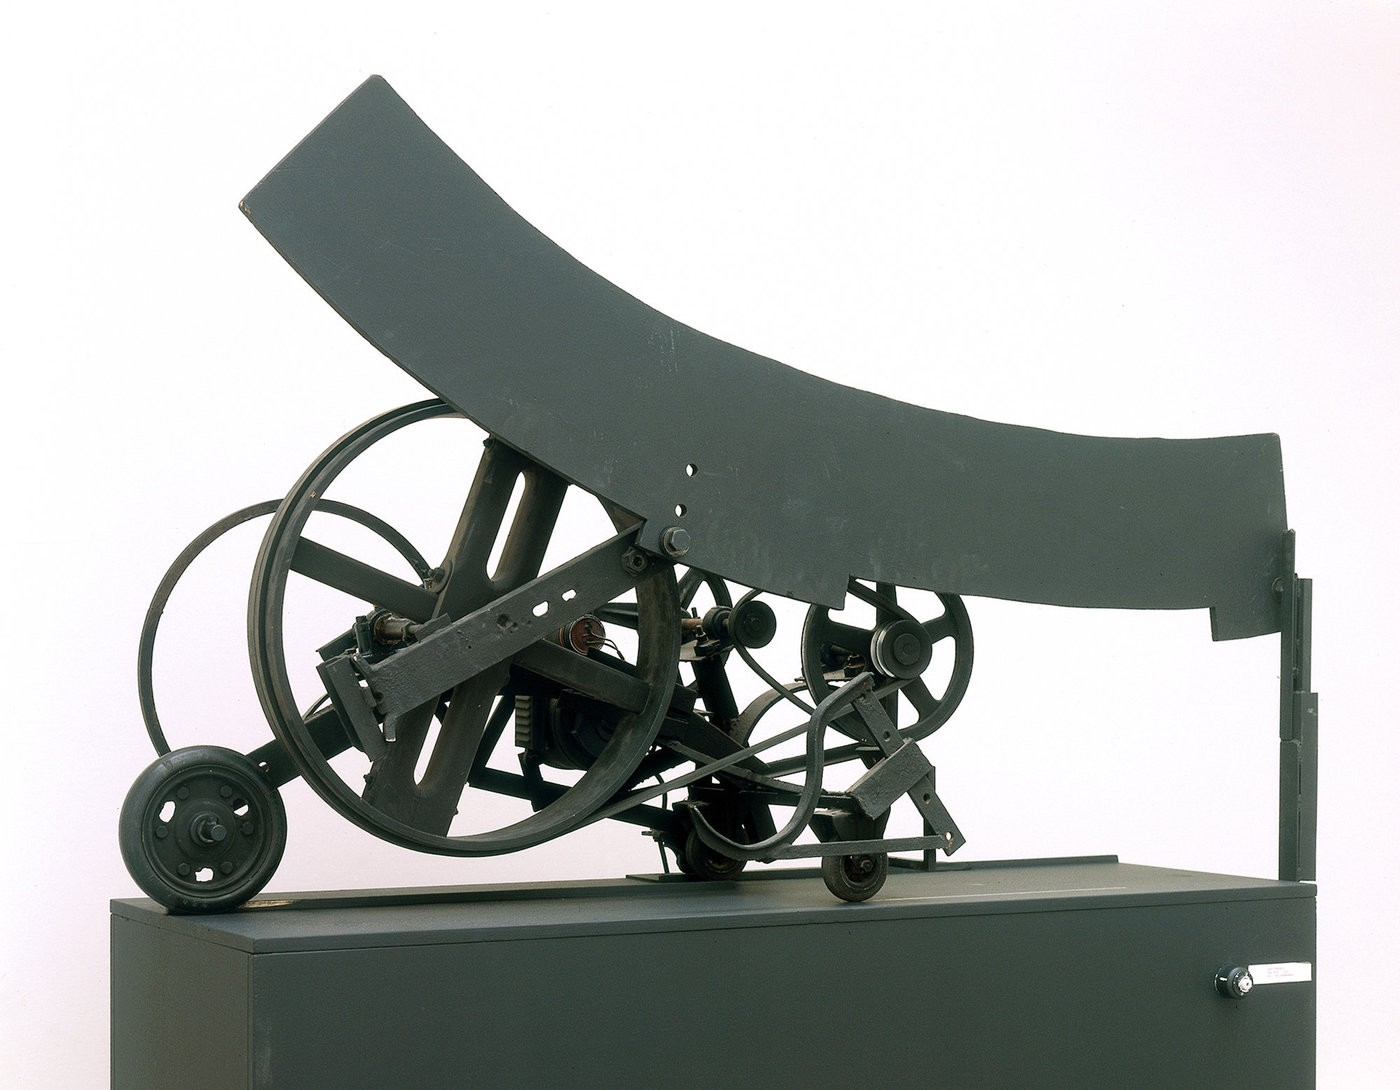 Medium 0467 tinguely van 20abbemuseum